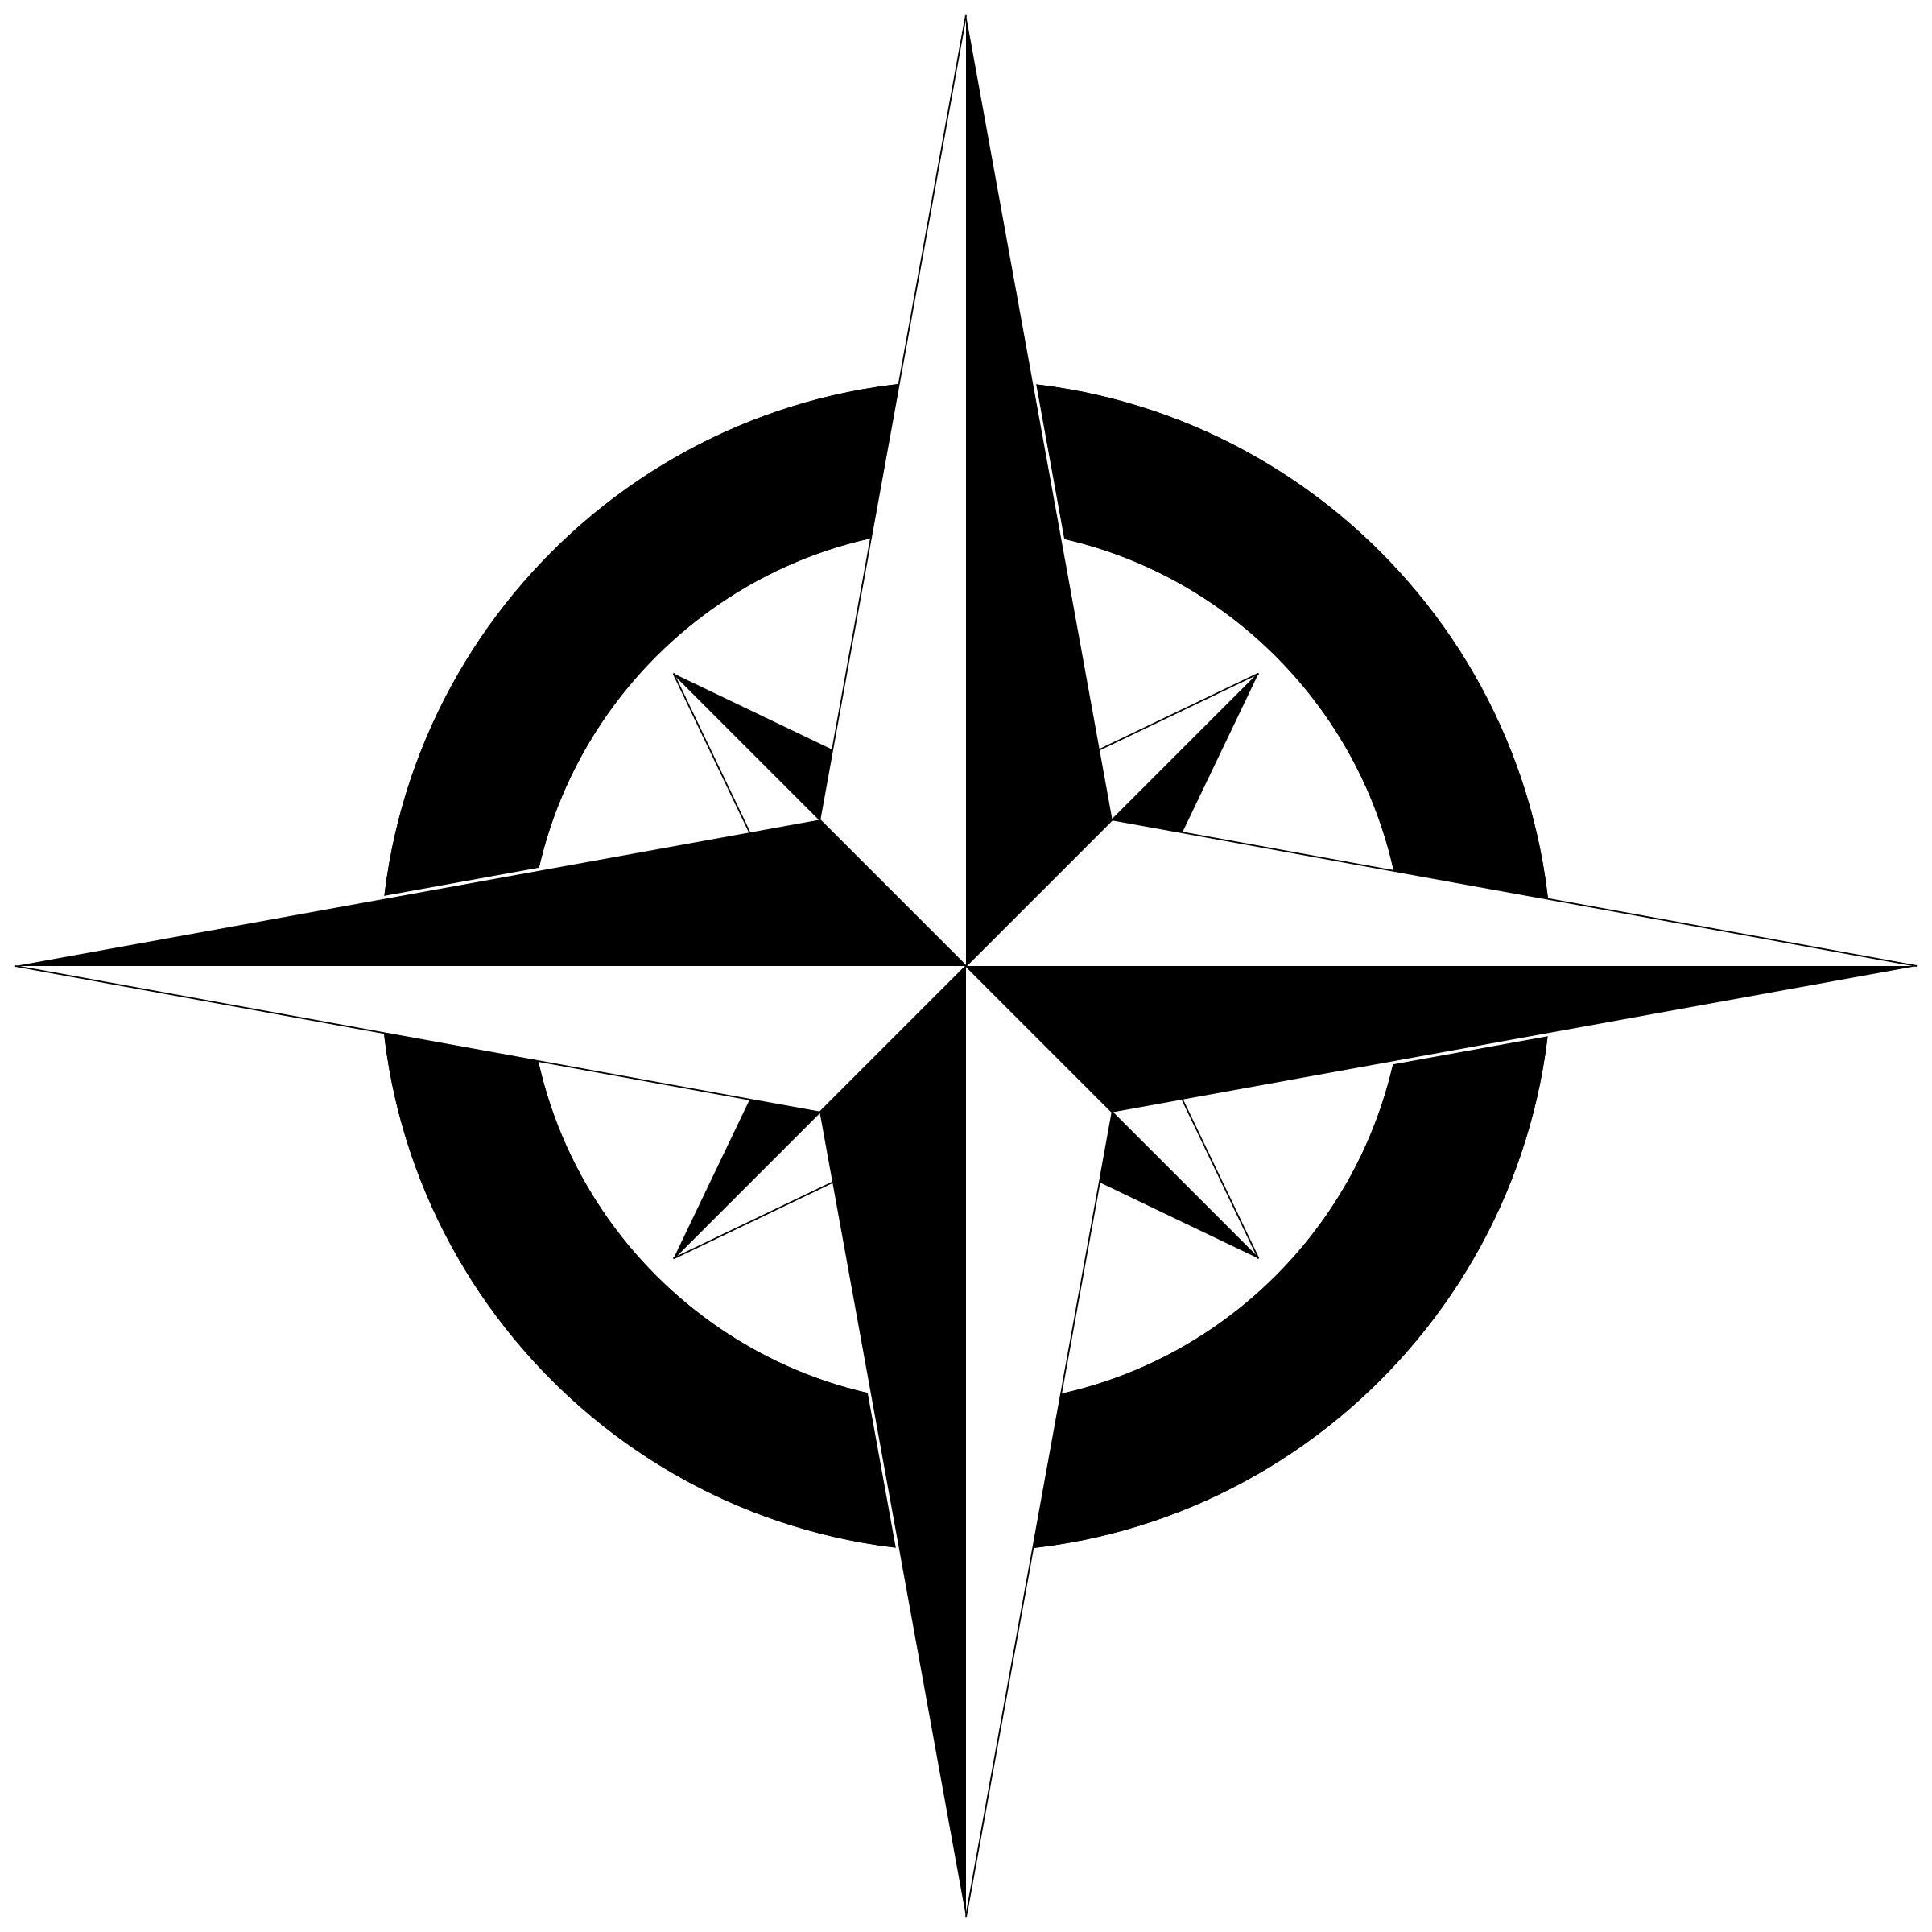 Clipart rose black and white. Compass png transparent this